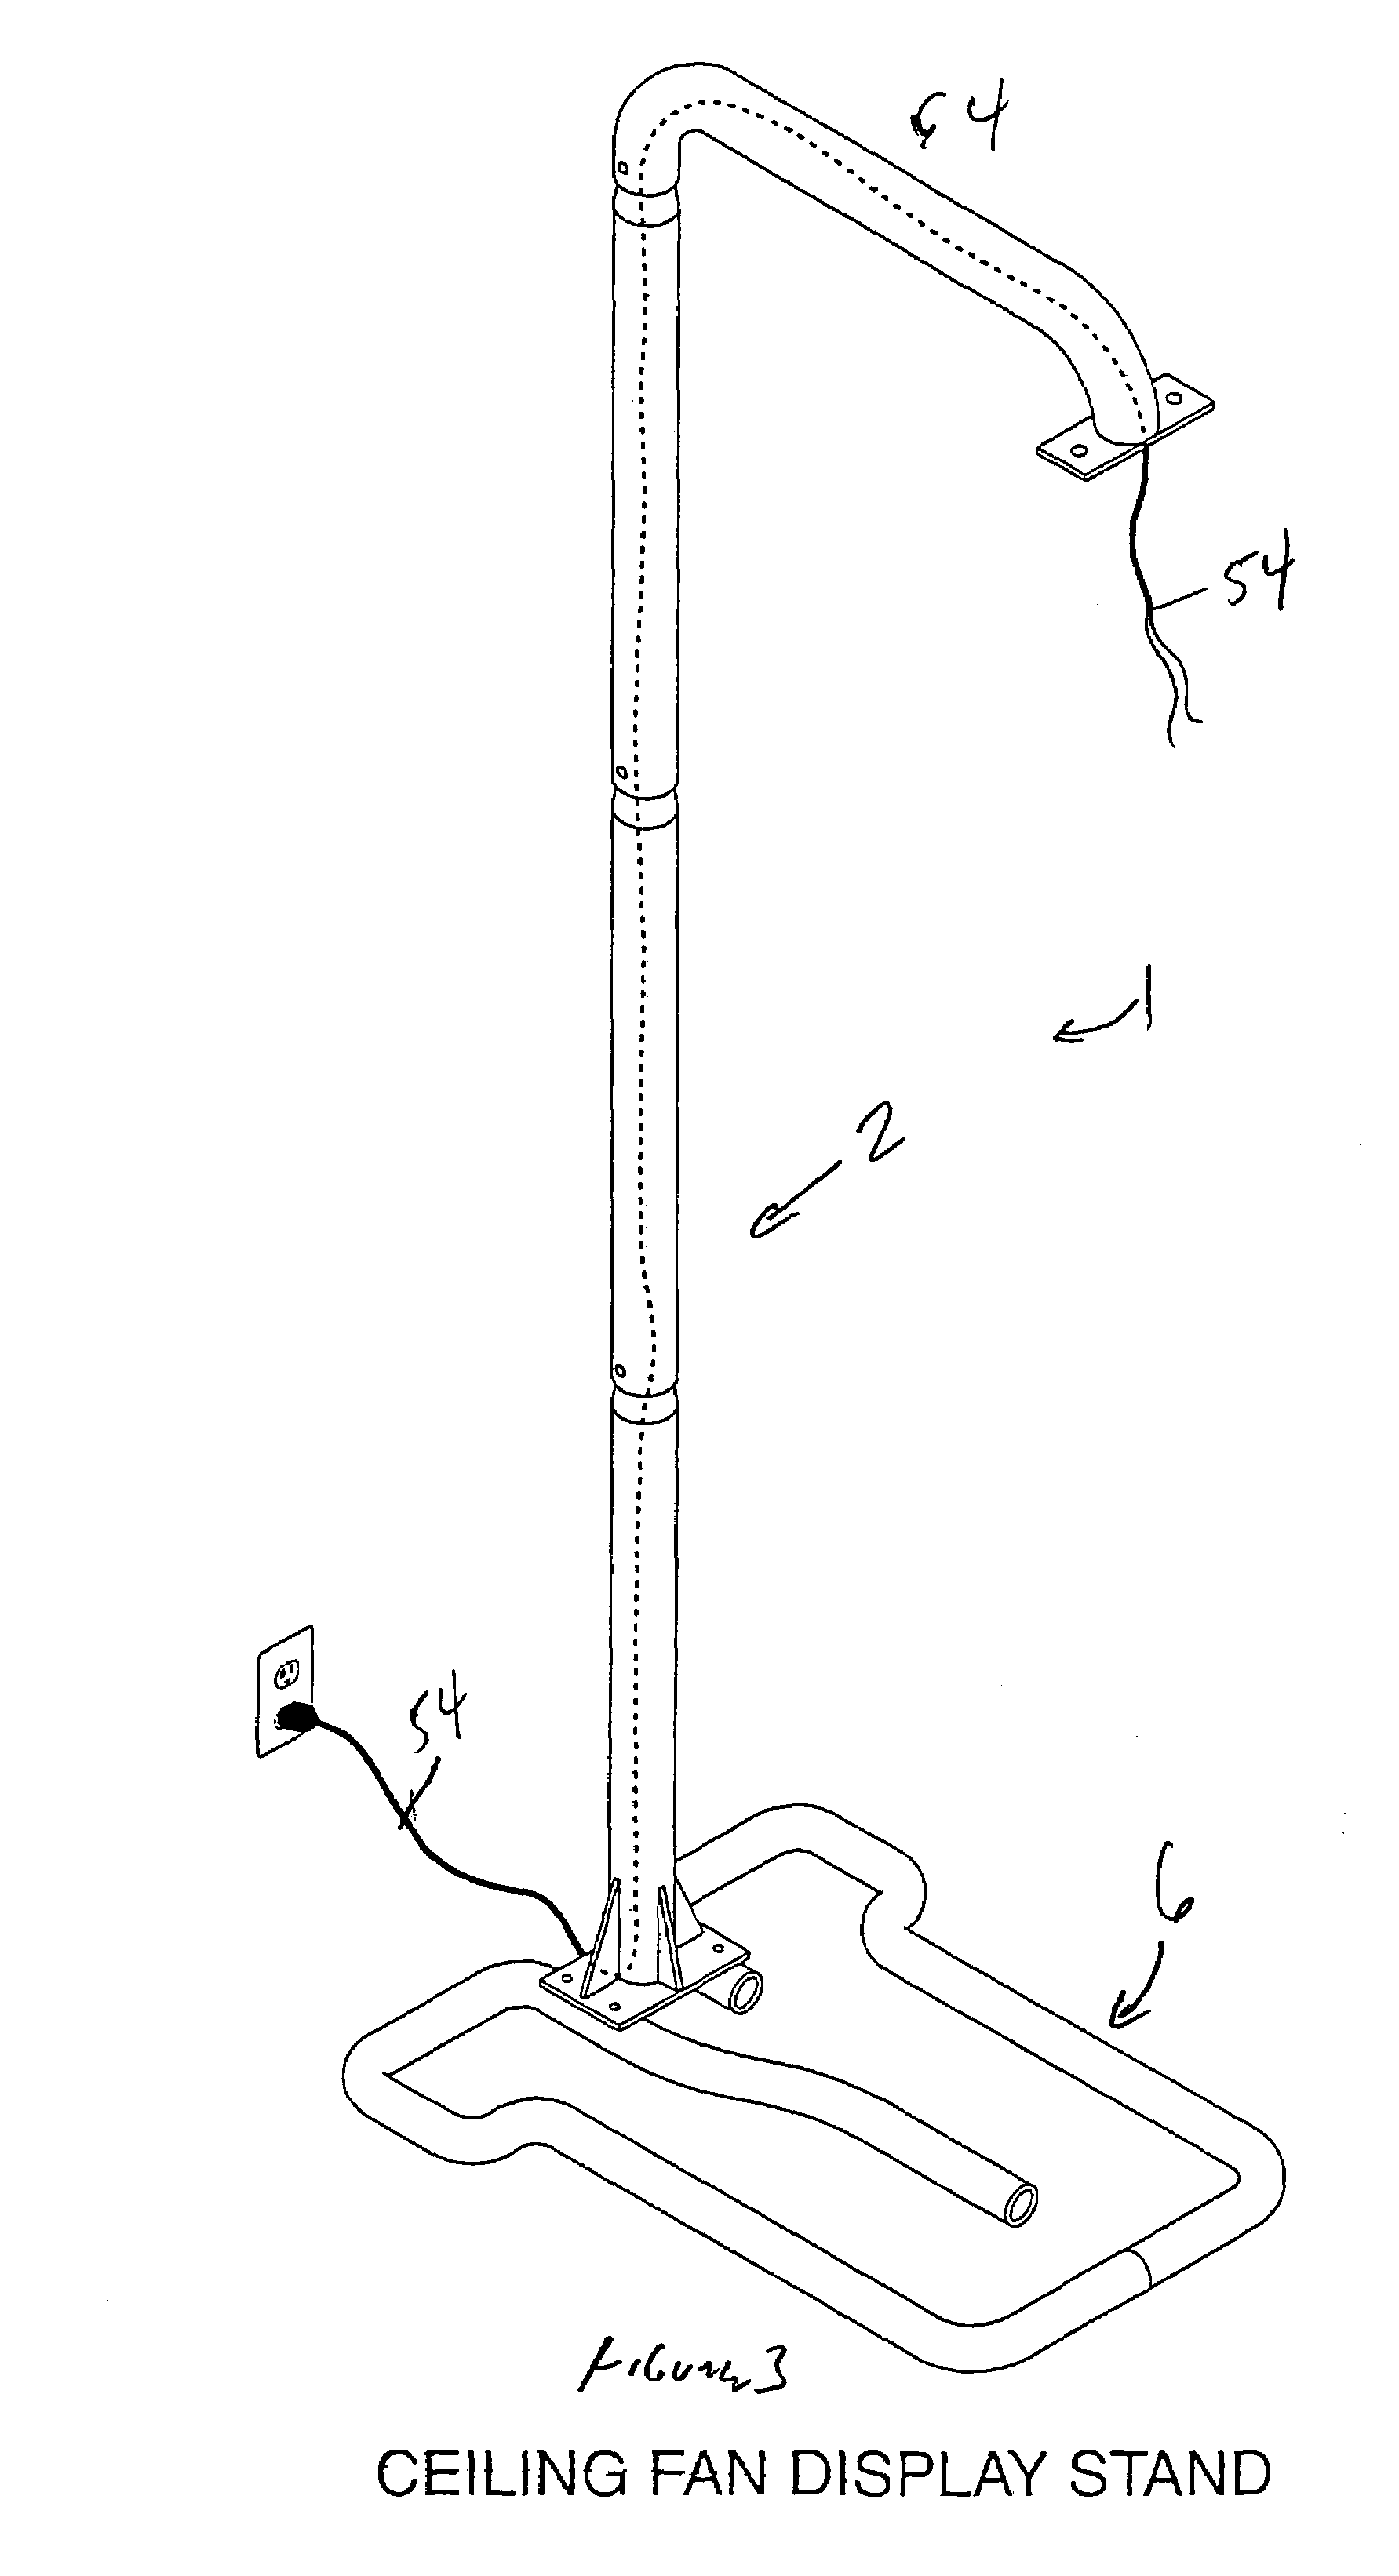 Ceiling Fan Stand Patent Us7374138 Ceiling Fan Display Google Patents